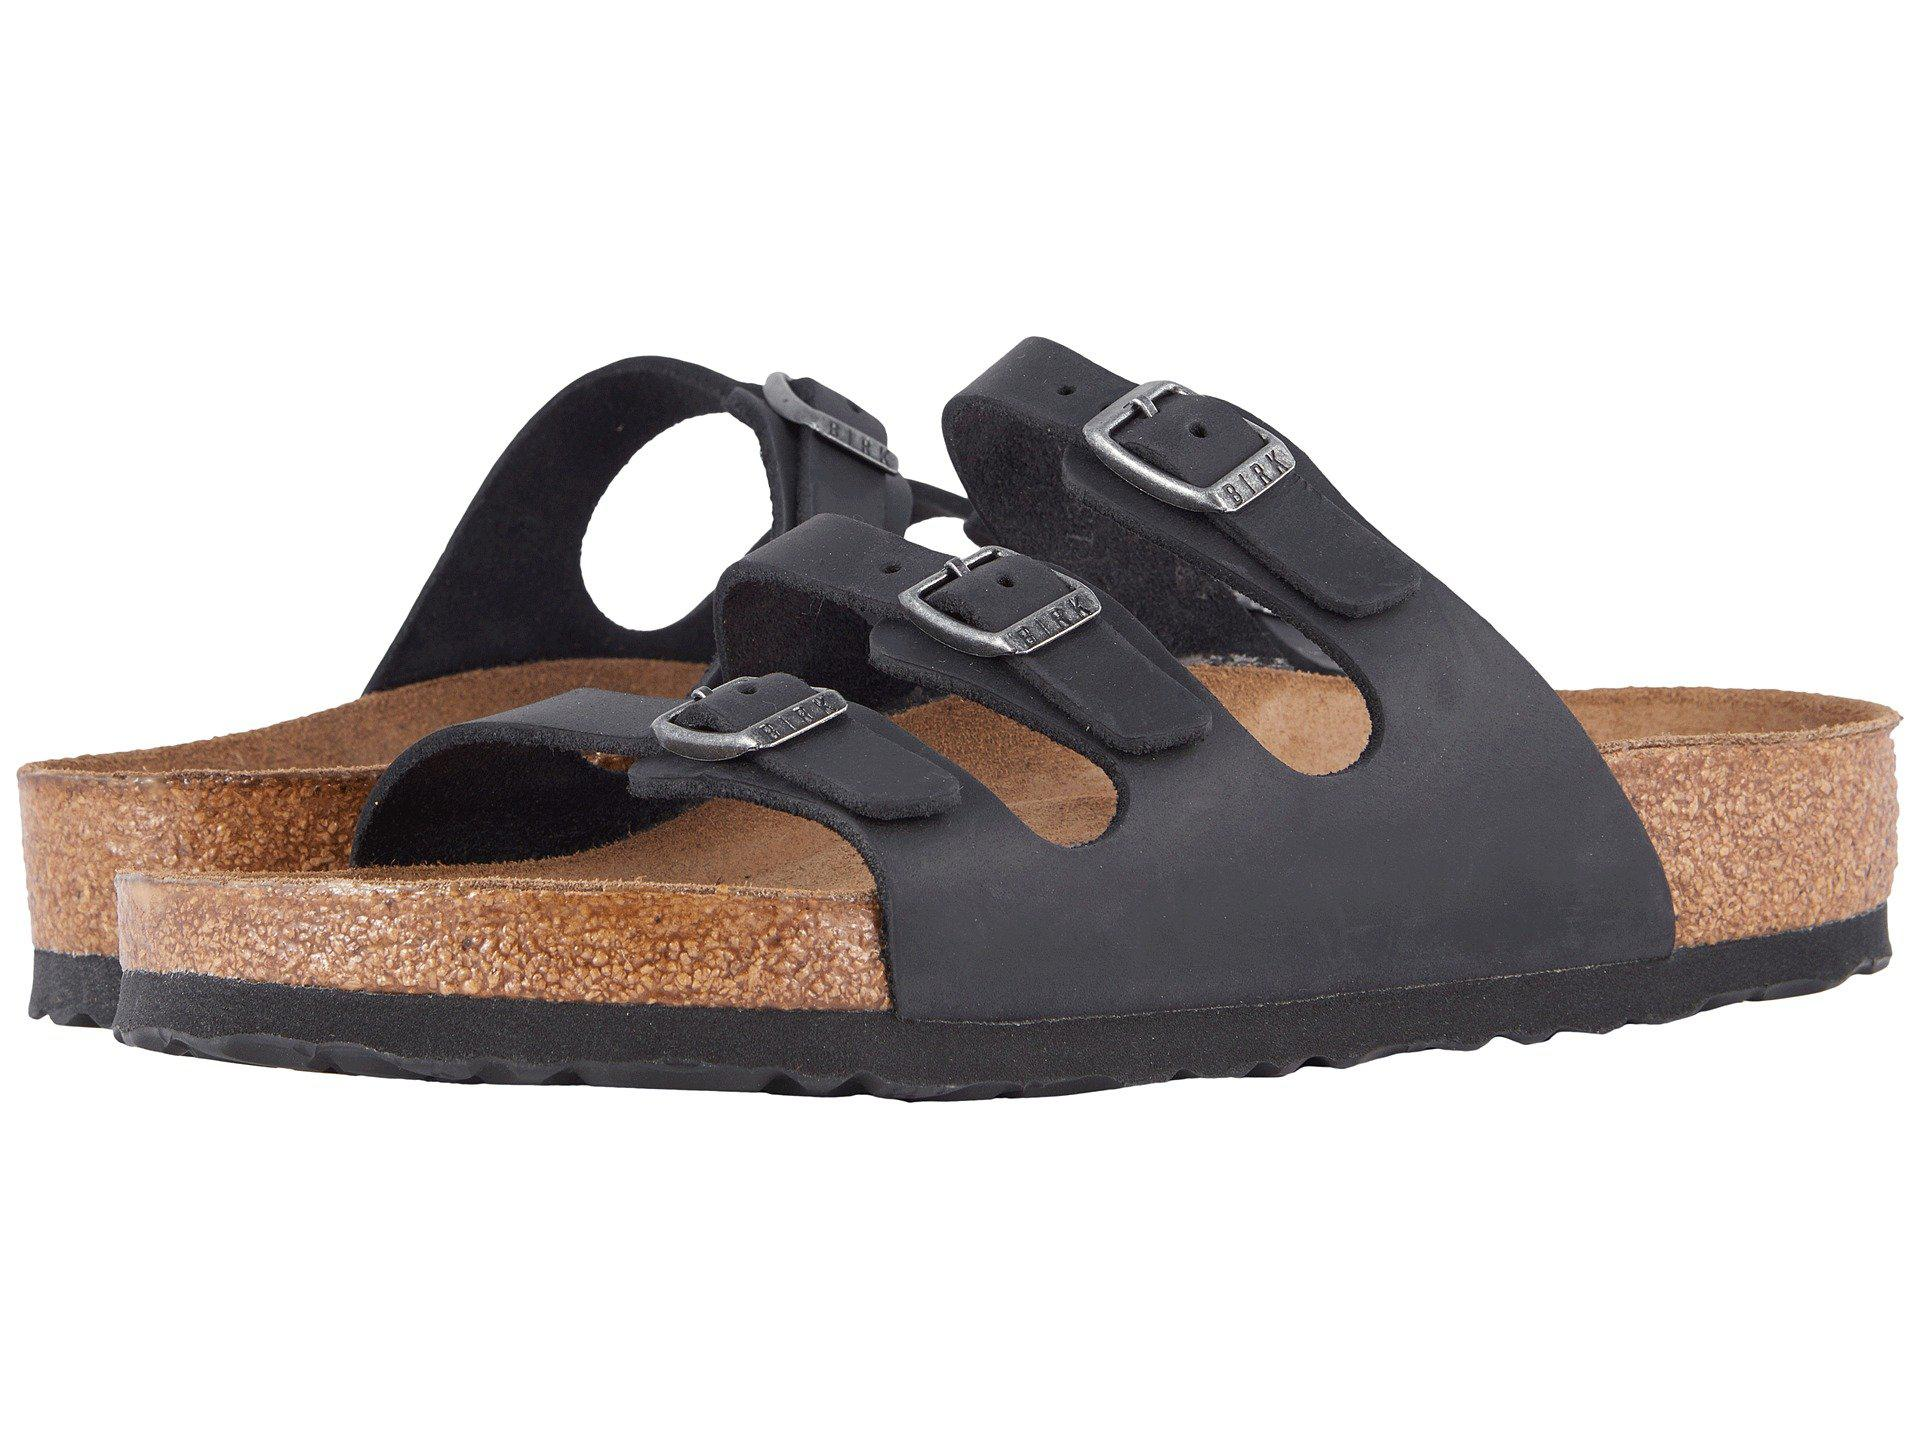 0d6de3d2337d Birkenstock. Black Florida Soft Footbed - Leather (habana Oiled Leather)  Women s Sandals